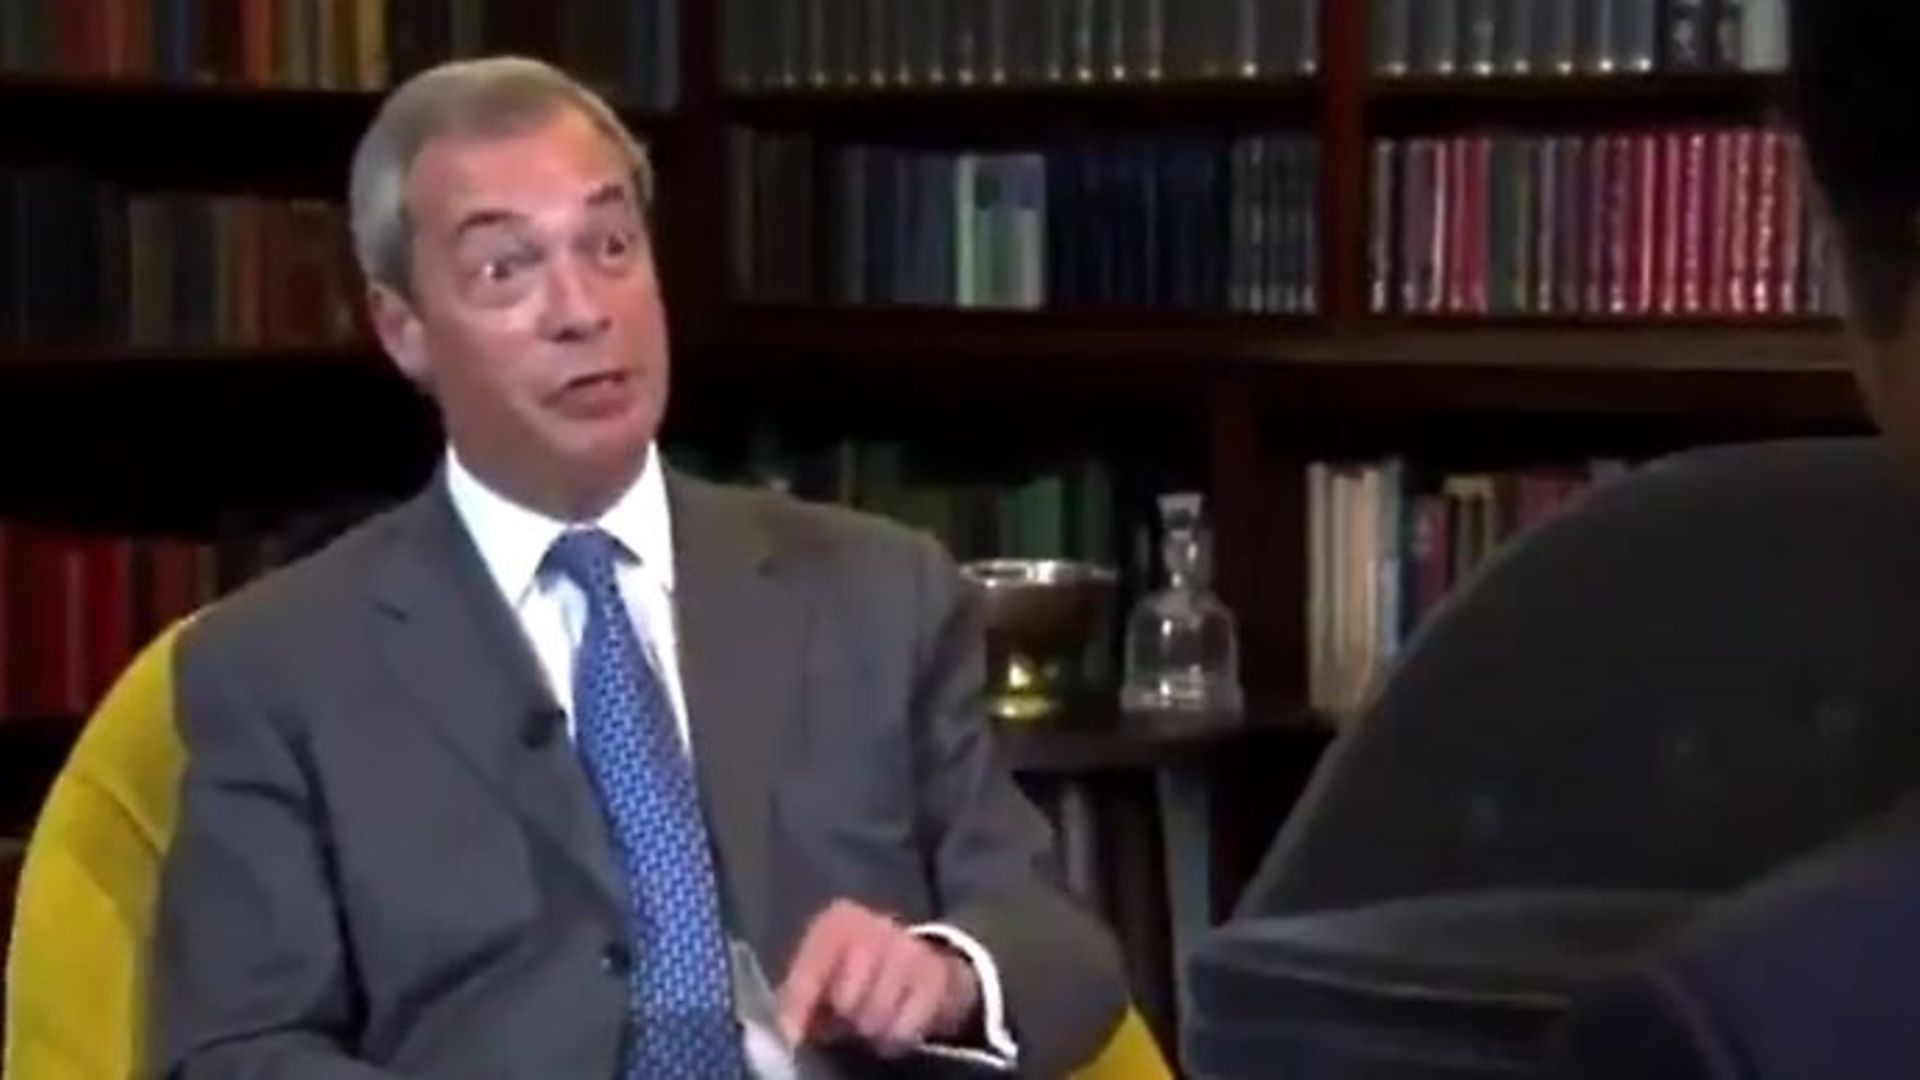 Nigel Farage says fishing rights would become the 'acid test' of Brexit - Credit: Twitter